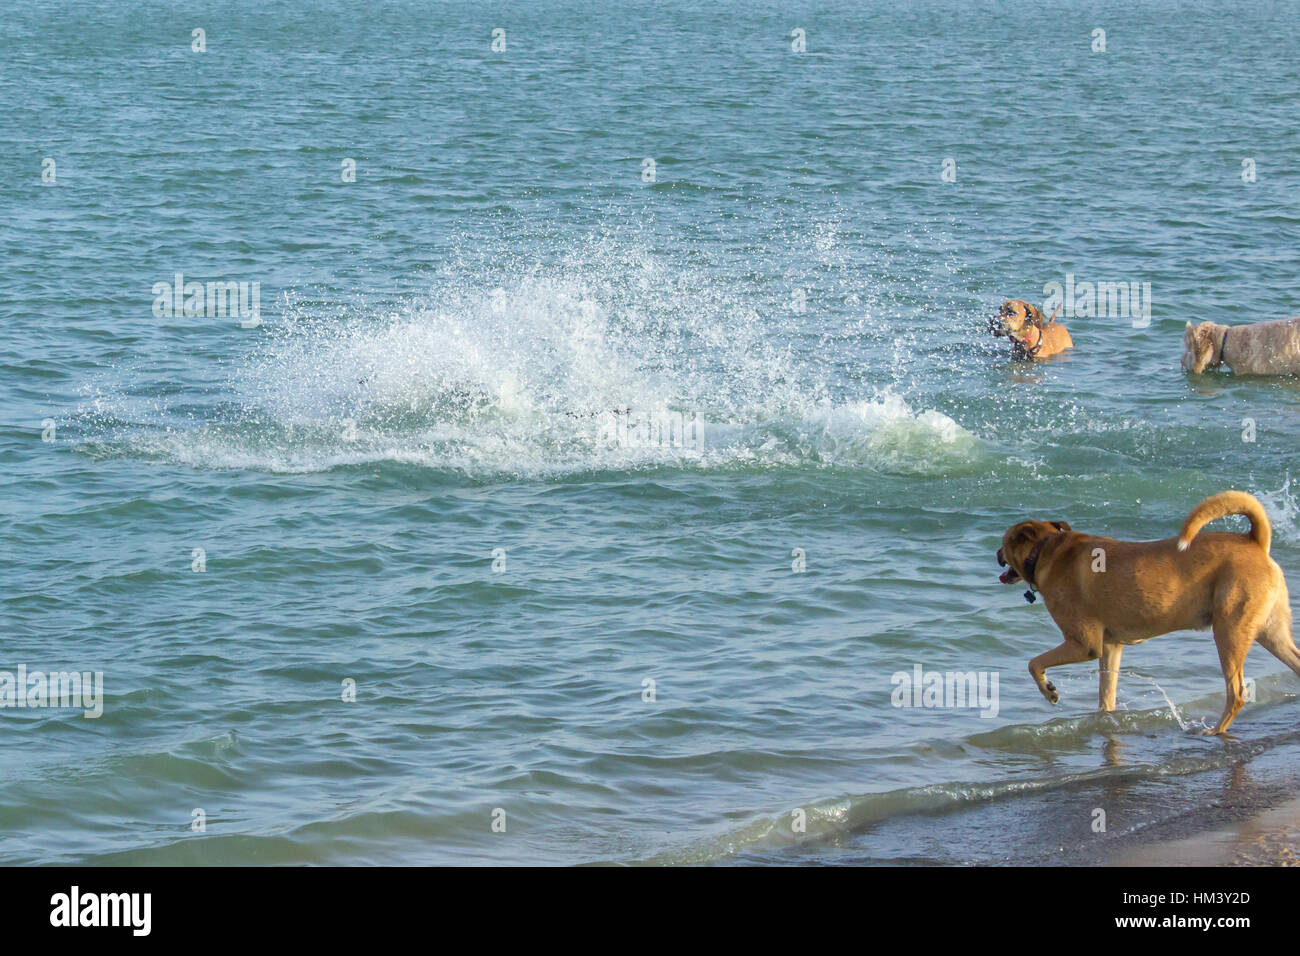 Dogs completely concealed in a huge splash of water in a dog park pond while mutt pals stand watching - Stock Image